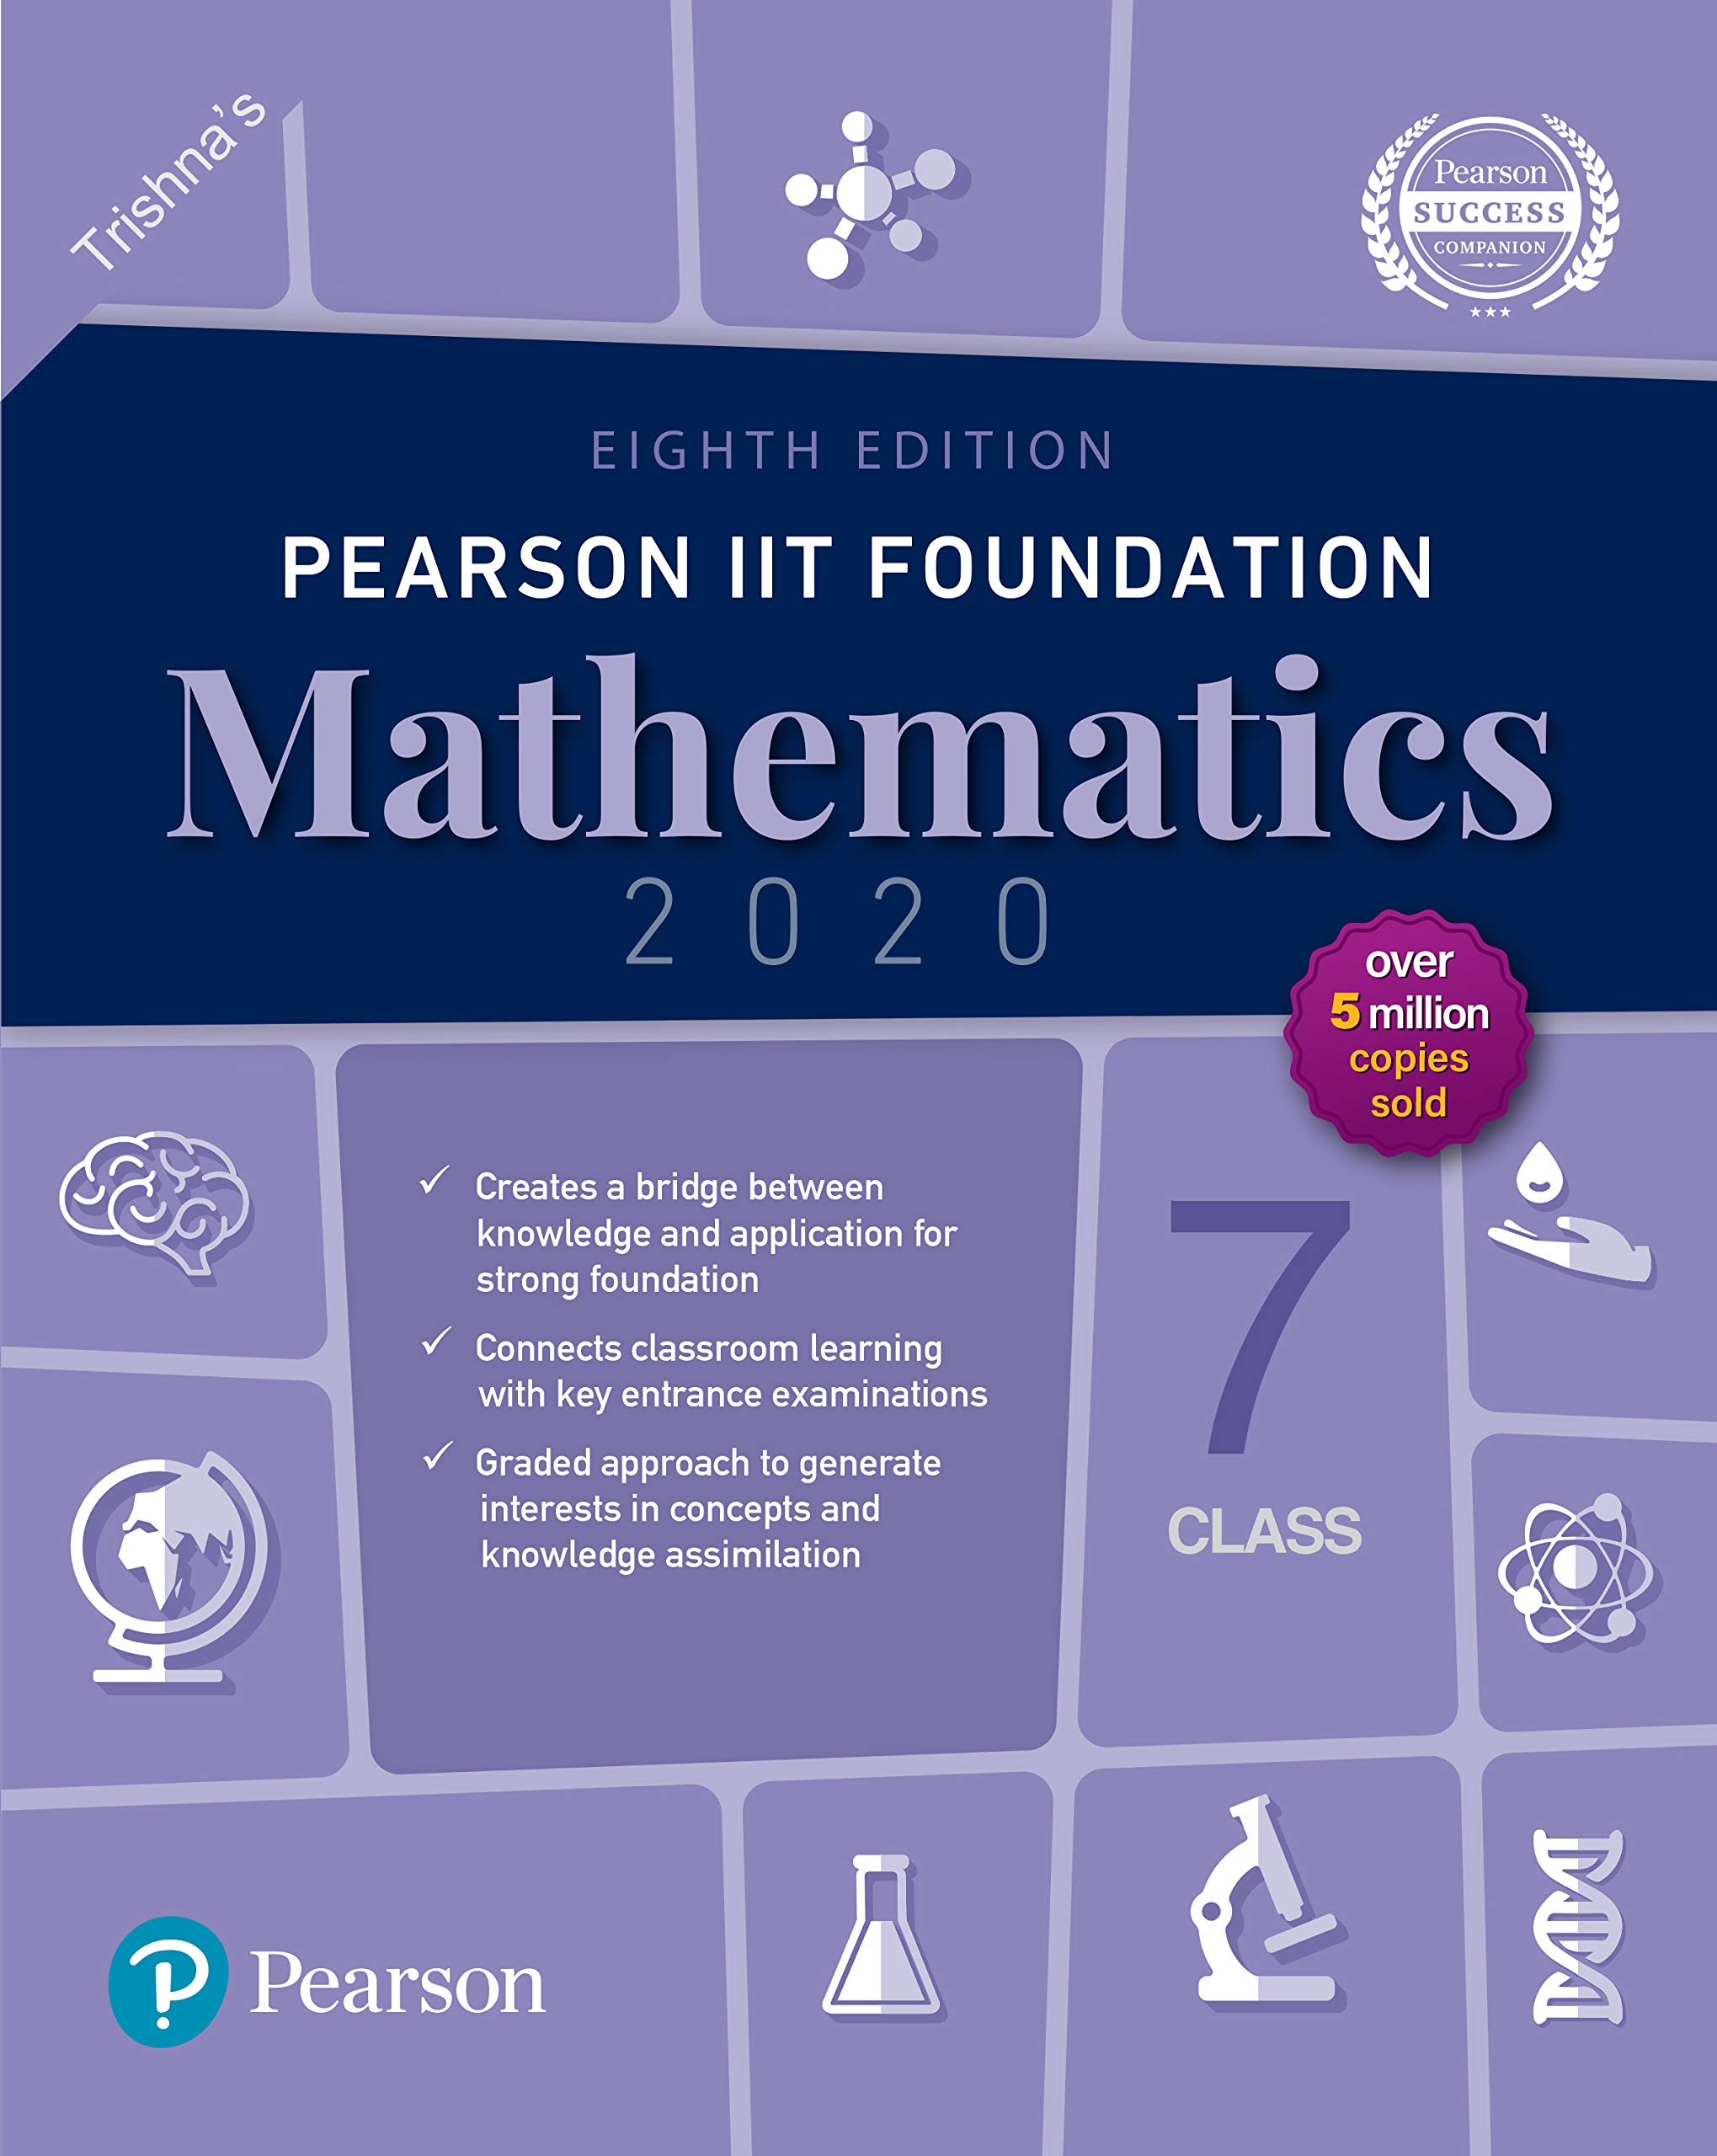 Pearson IIT Foundation Series Class 7 Mathematics|2020 Edition|By Pearson